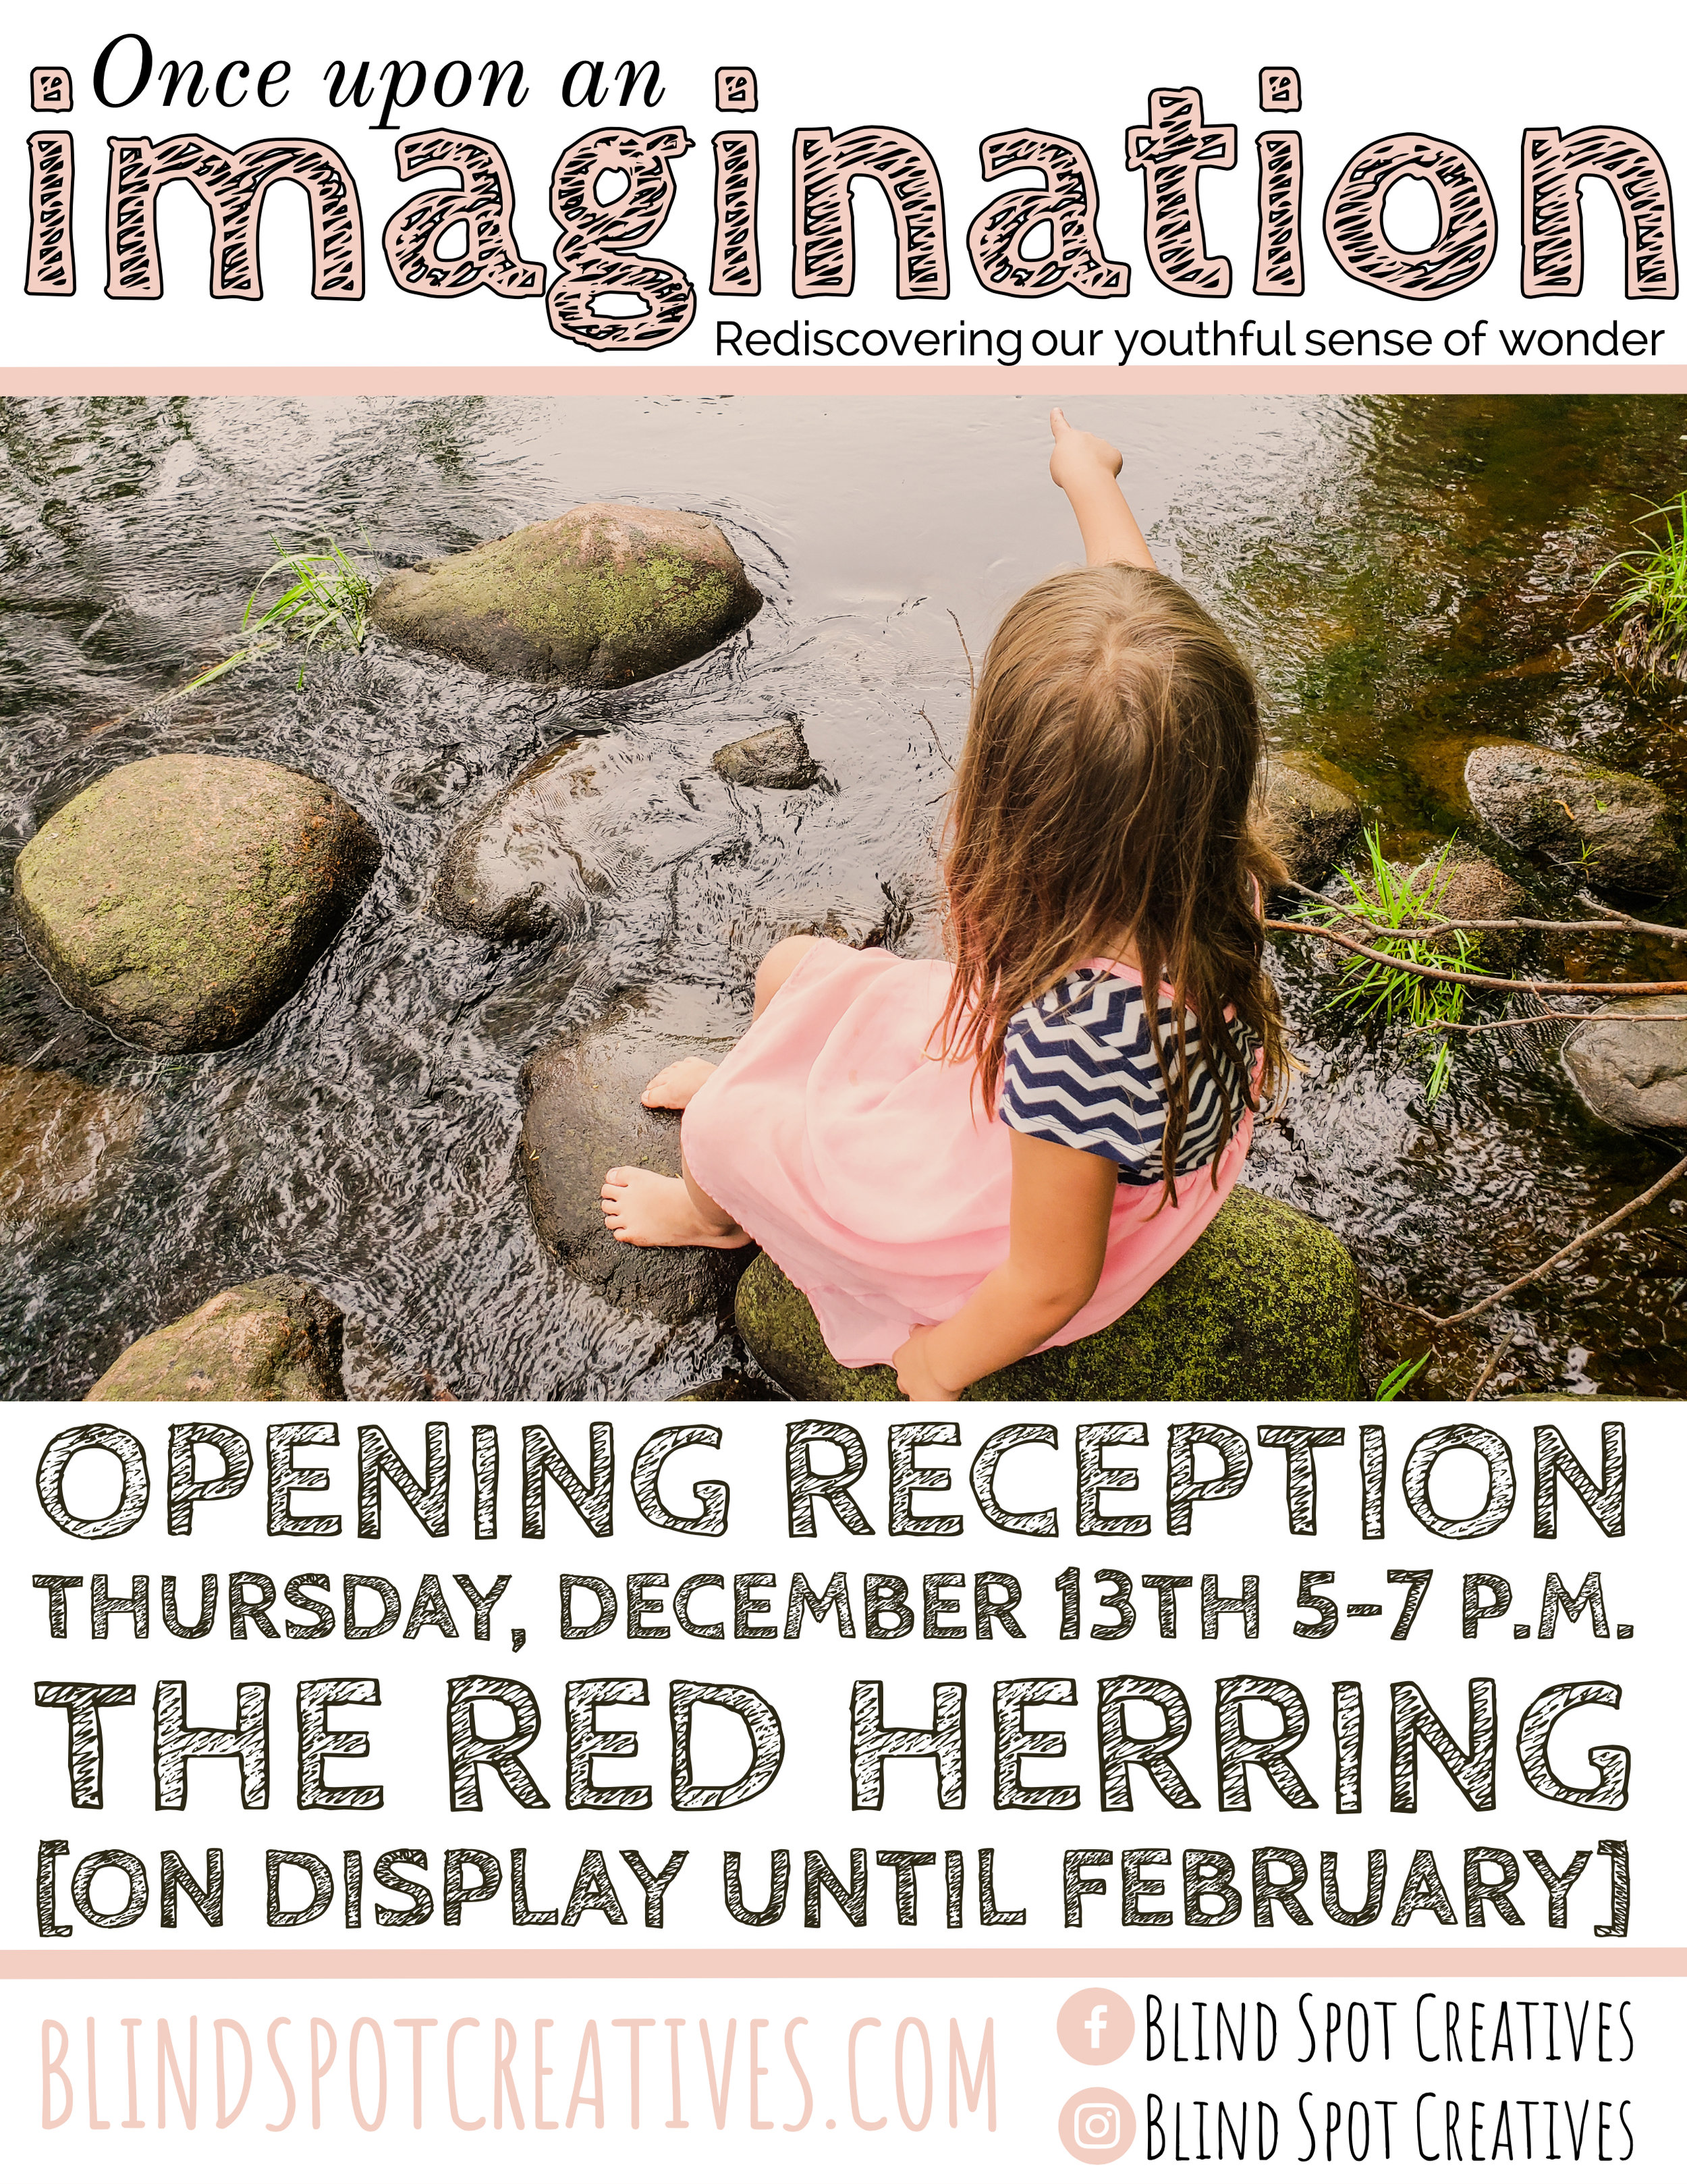 © Blind Spot Creatives - Once Upon an Imagination - Flyer - Red Herring - Duluth, Minnesota - Photography